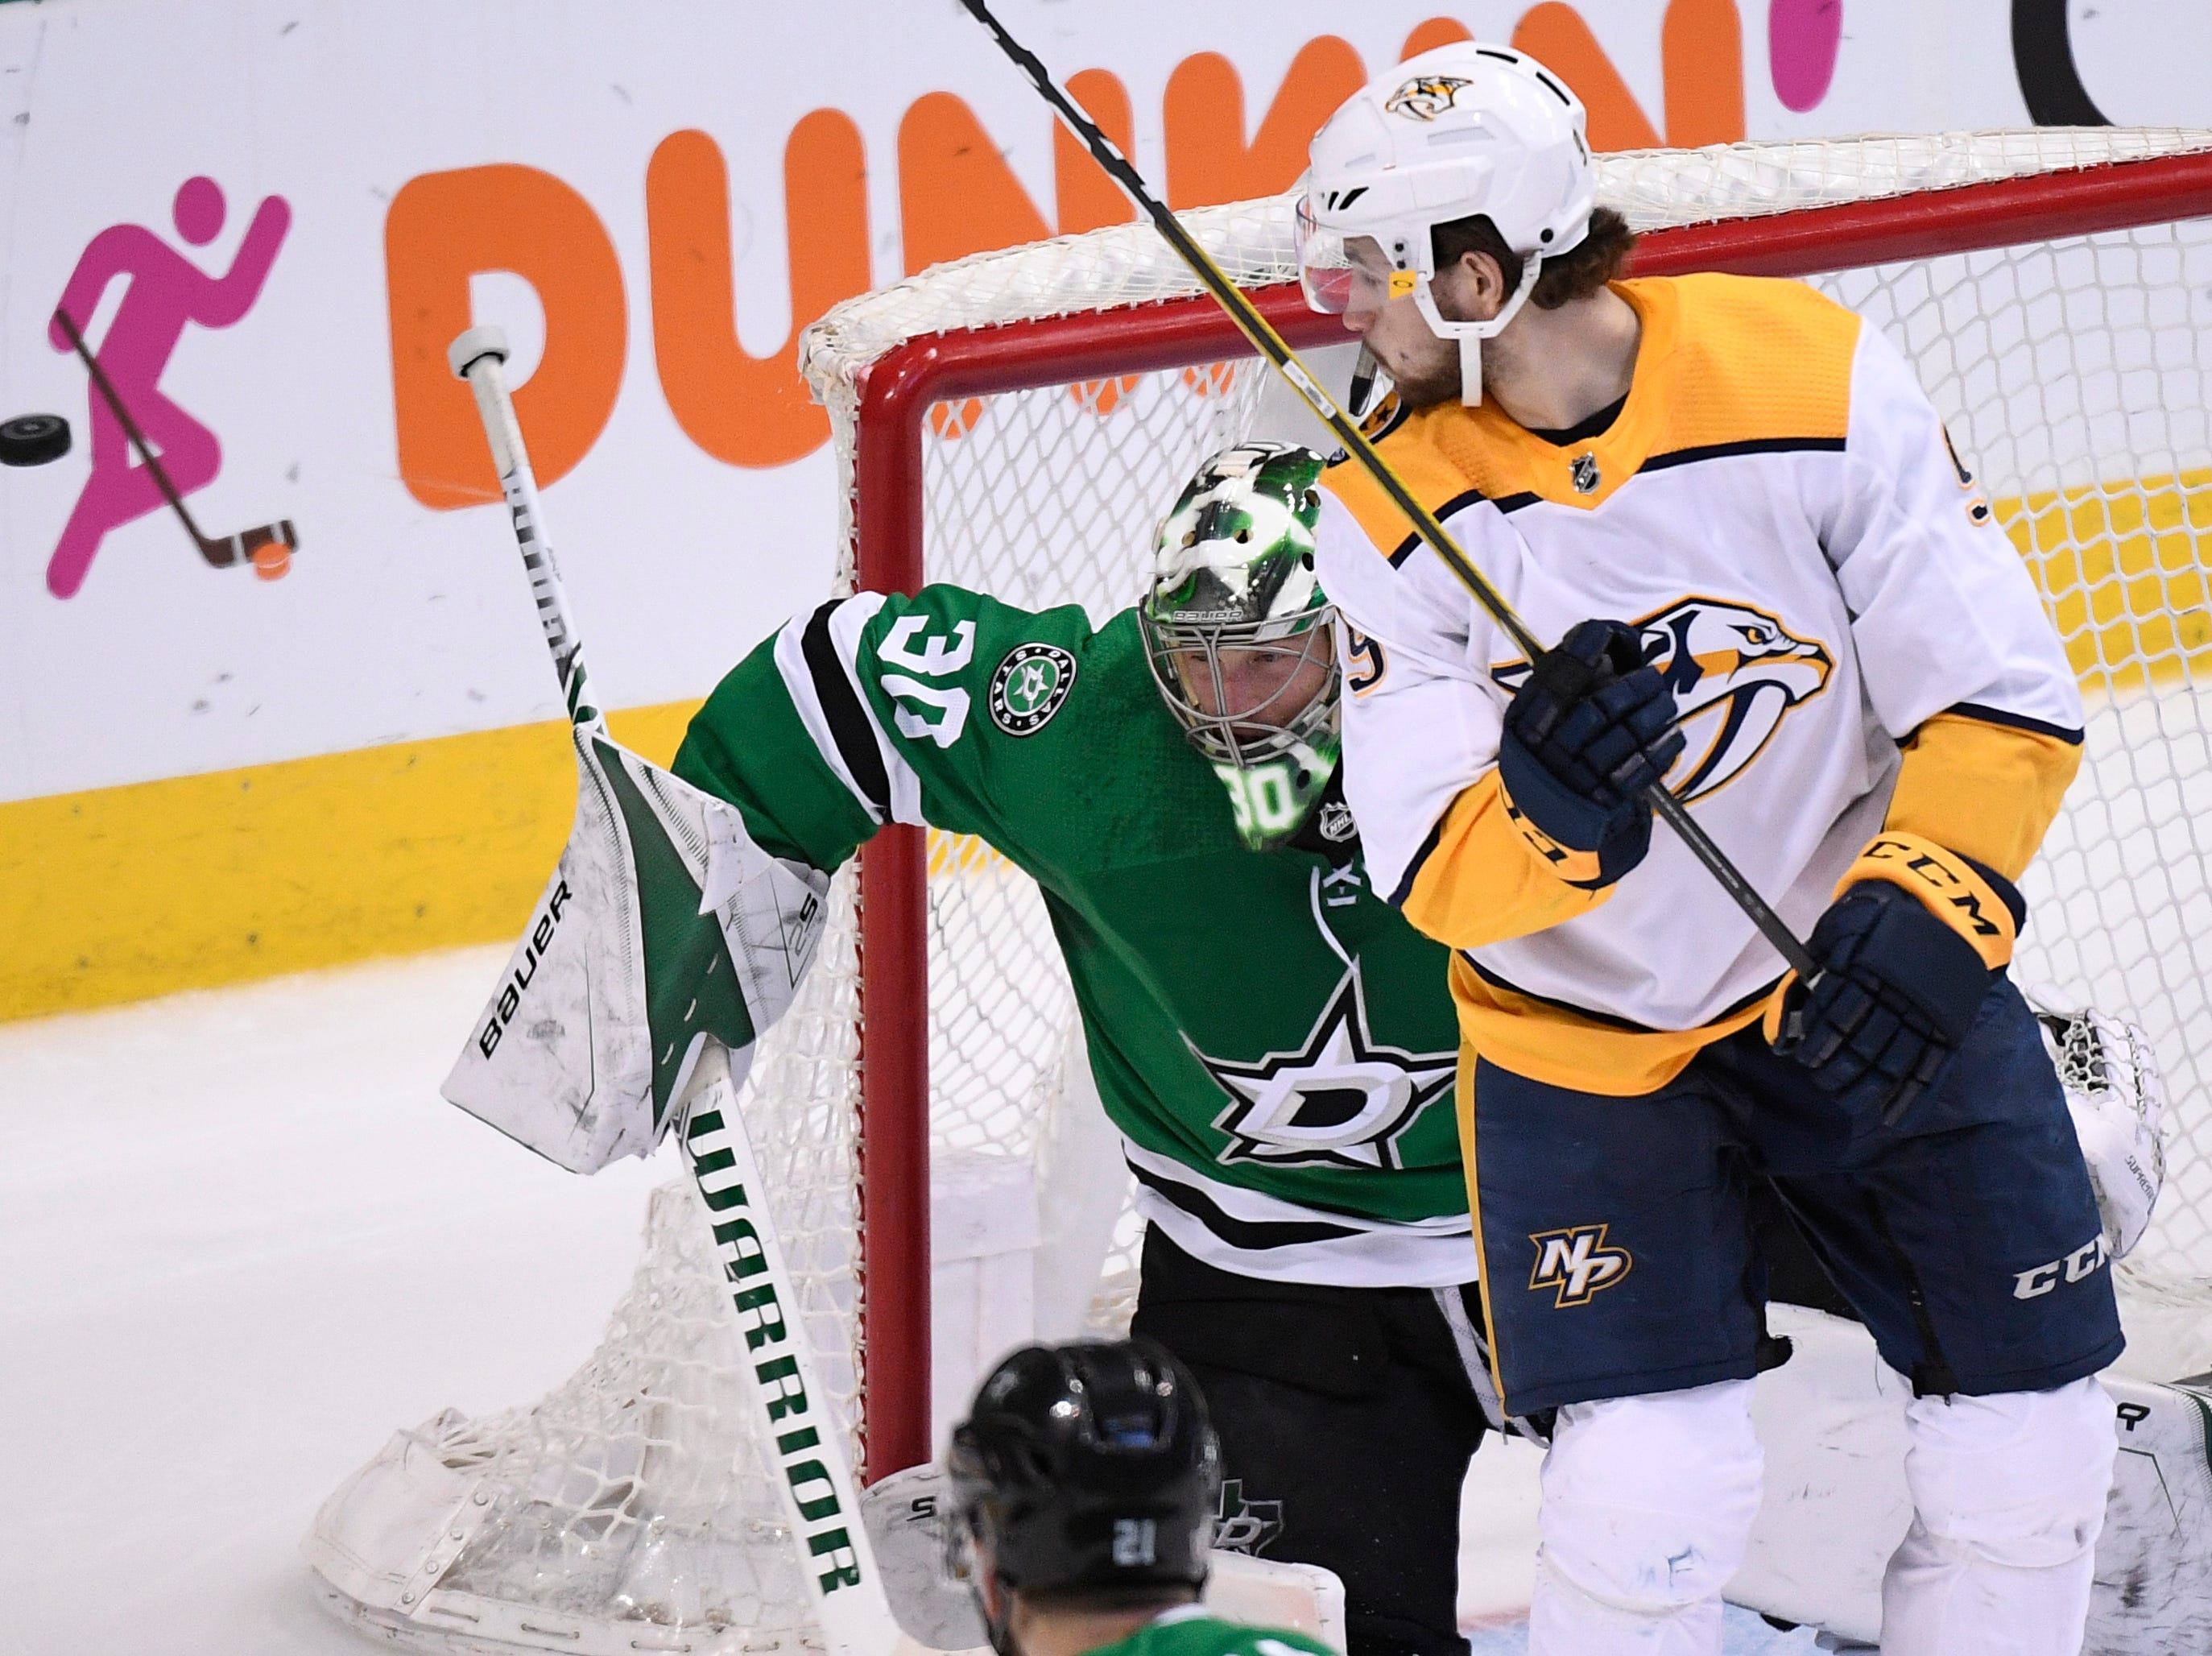 Dallas Stars goaltender Ben Bishop (30) defends the net against Nashville Predators left wing Filip Forsberg (9) during the second period of the divisional semifinal game at the American Airlines Center in Dallas, Texas, Monday, April 22, 2019.